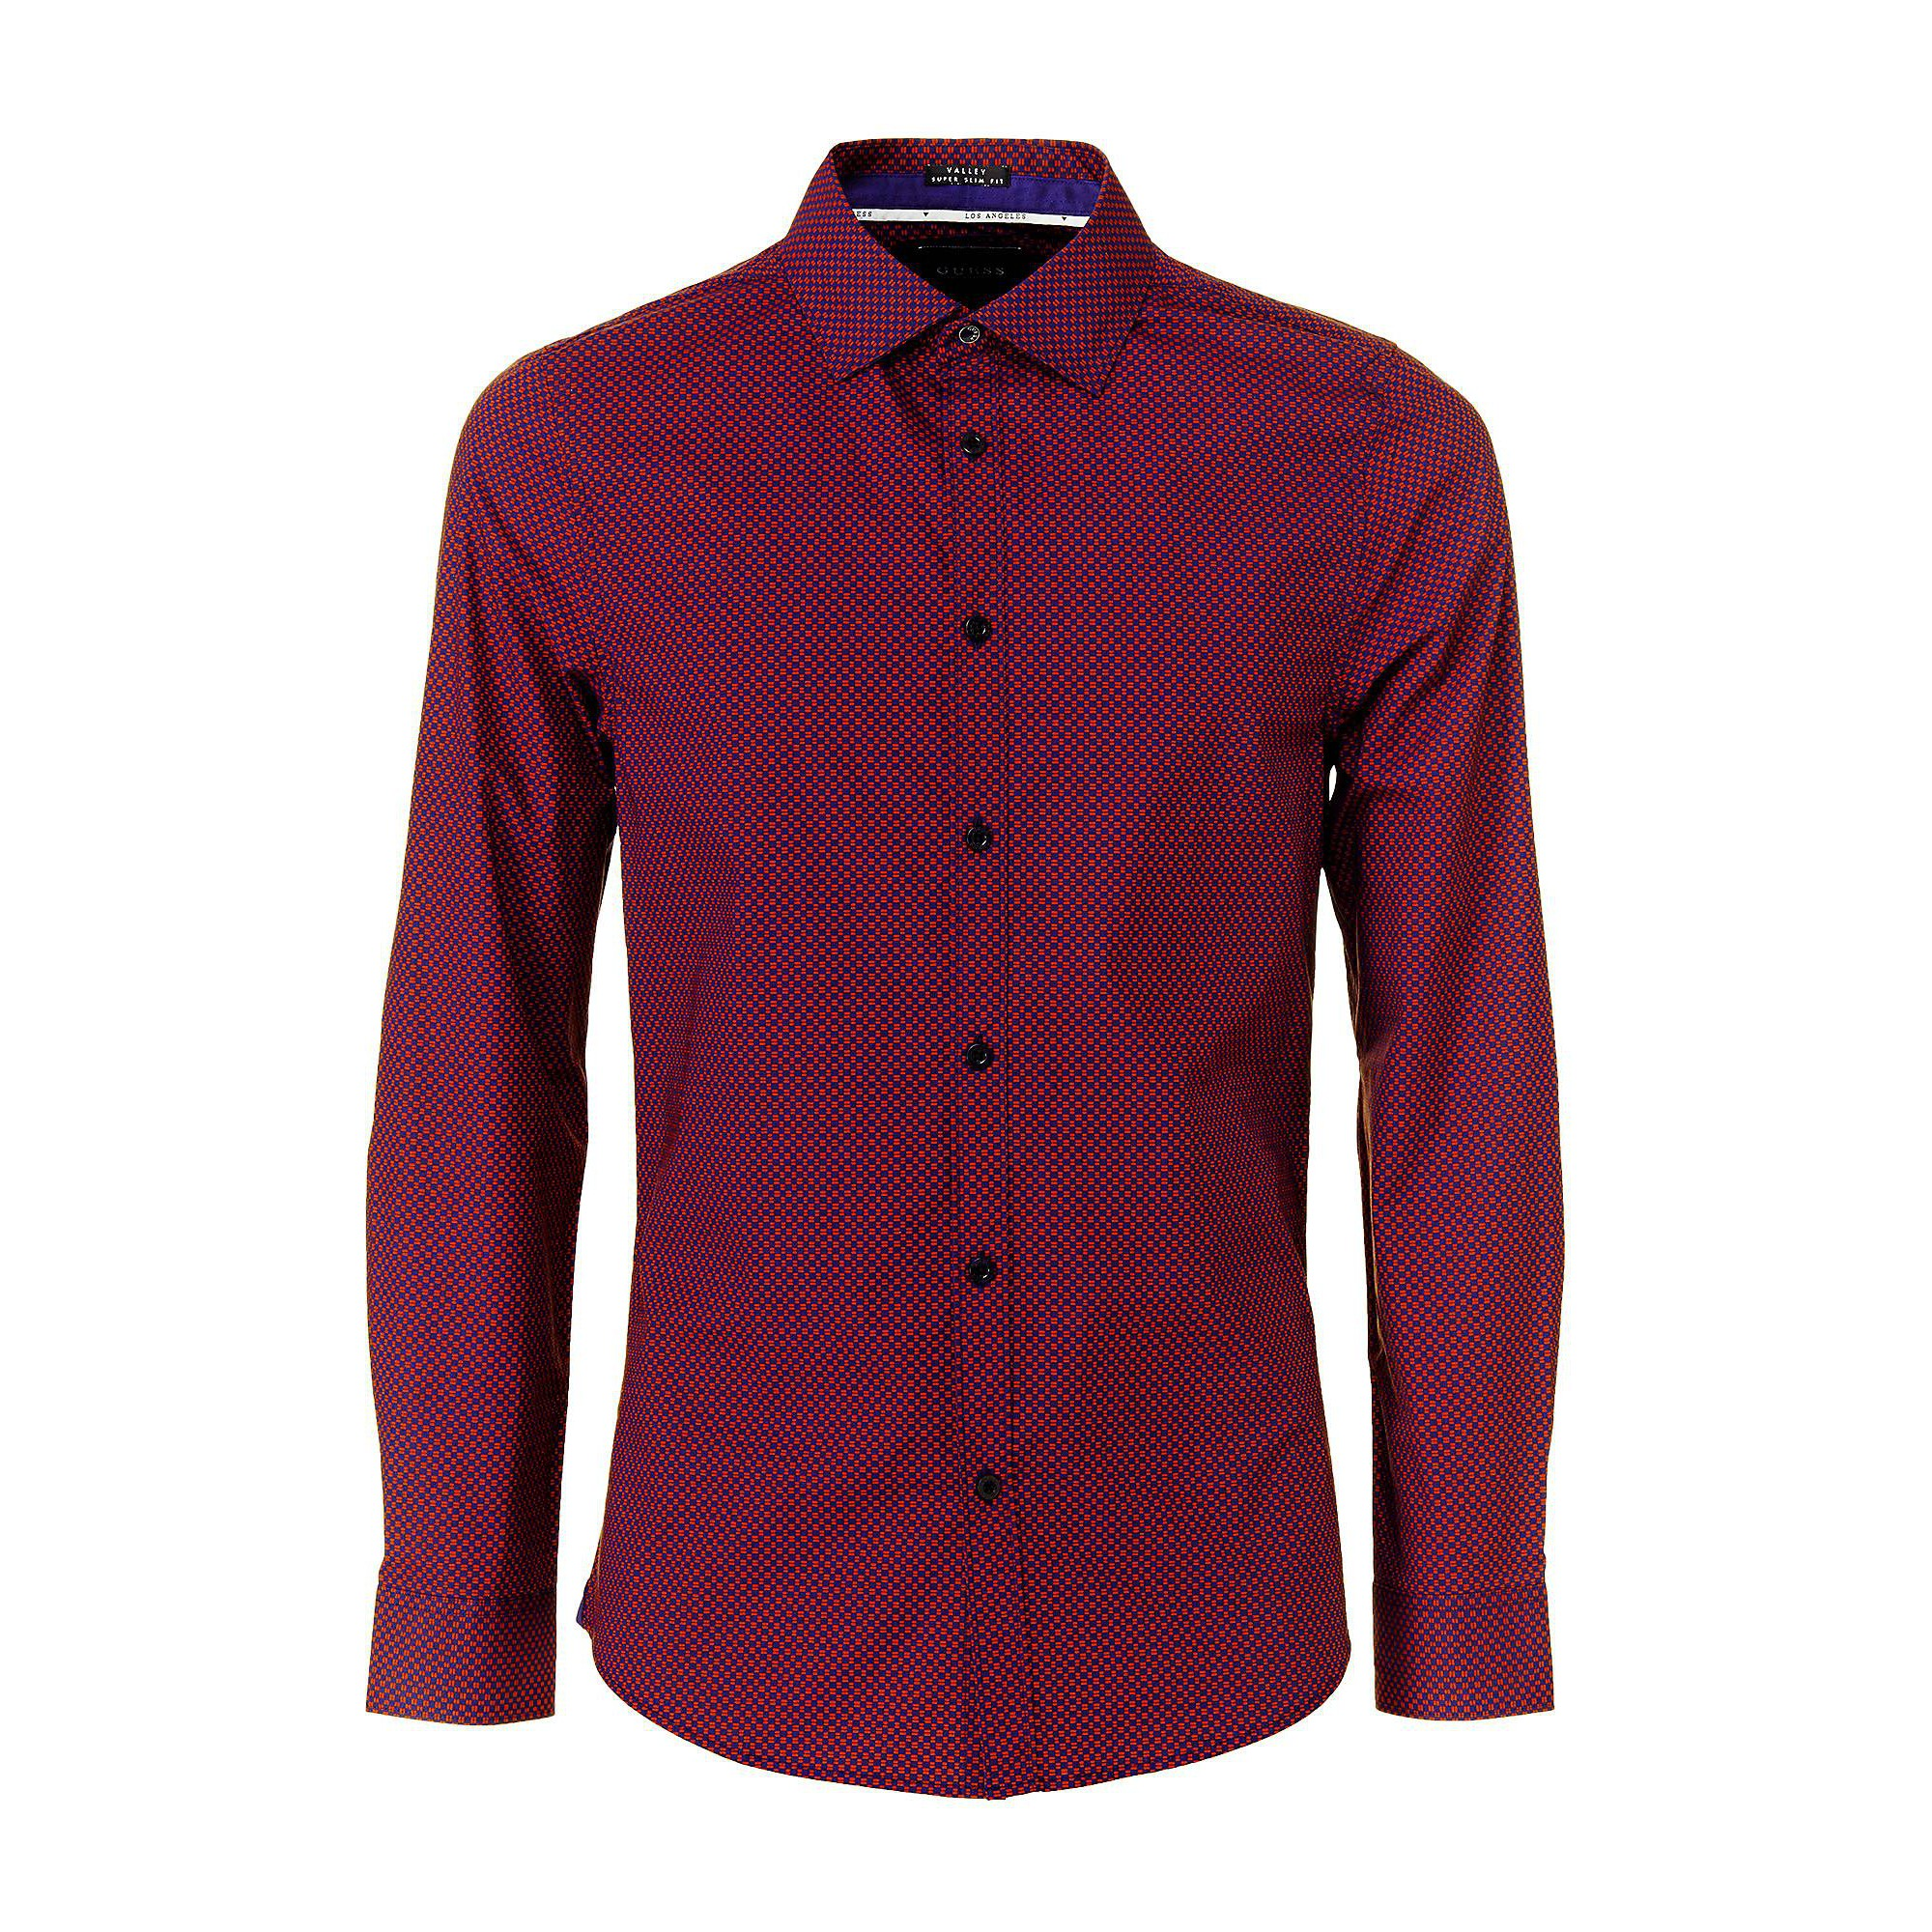 Homme Rouge Chemise Longues Valley Manches Guess gxwqanY5C